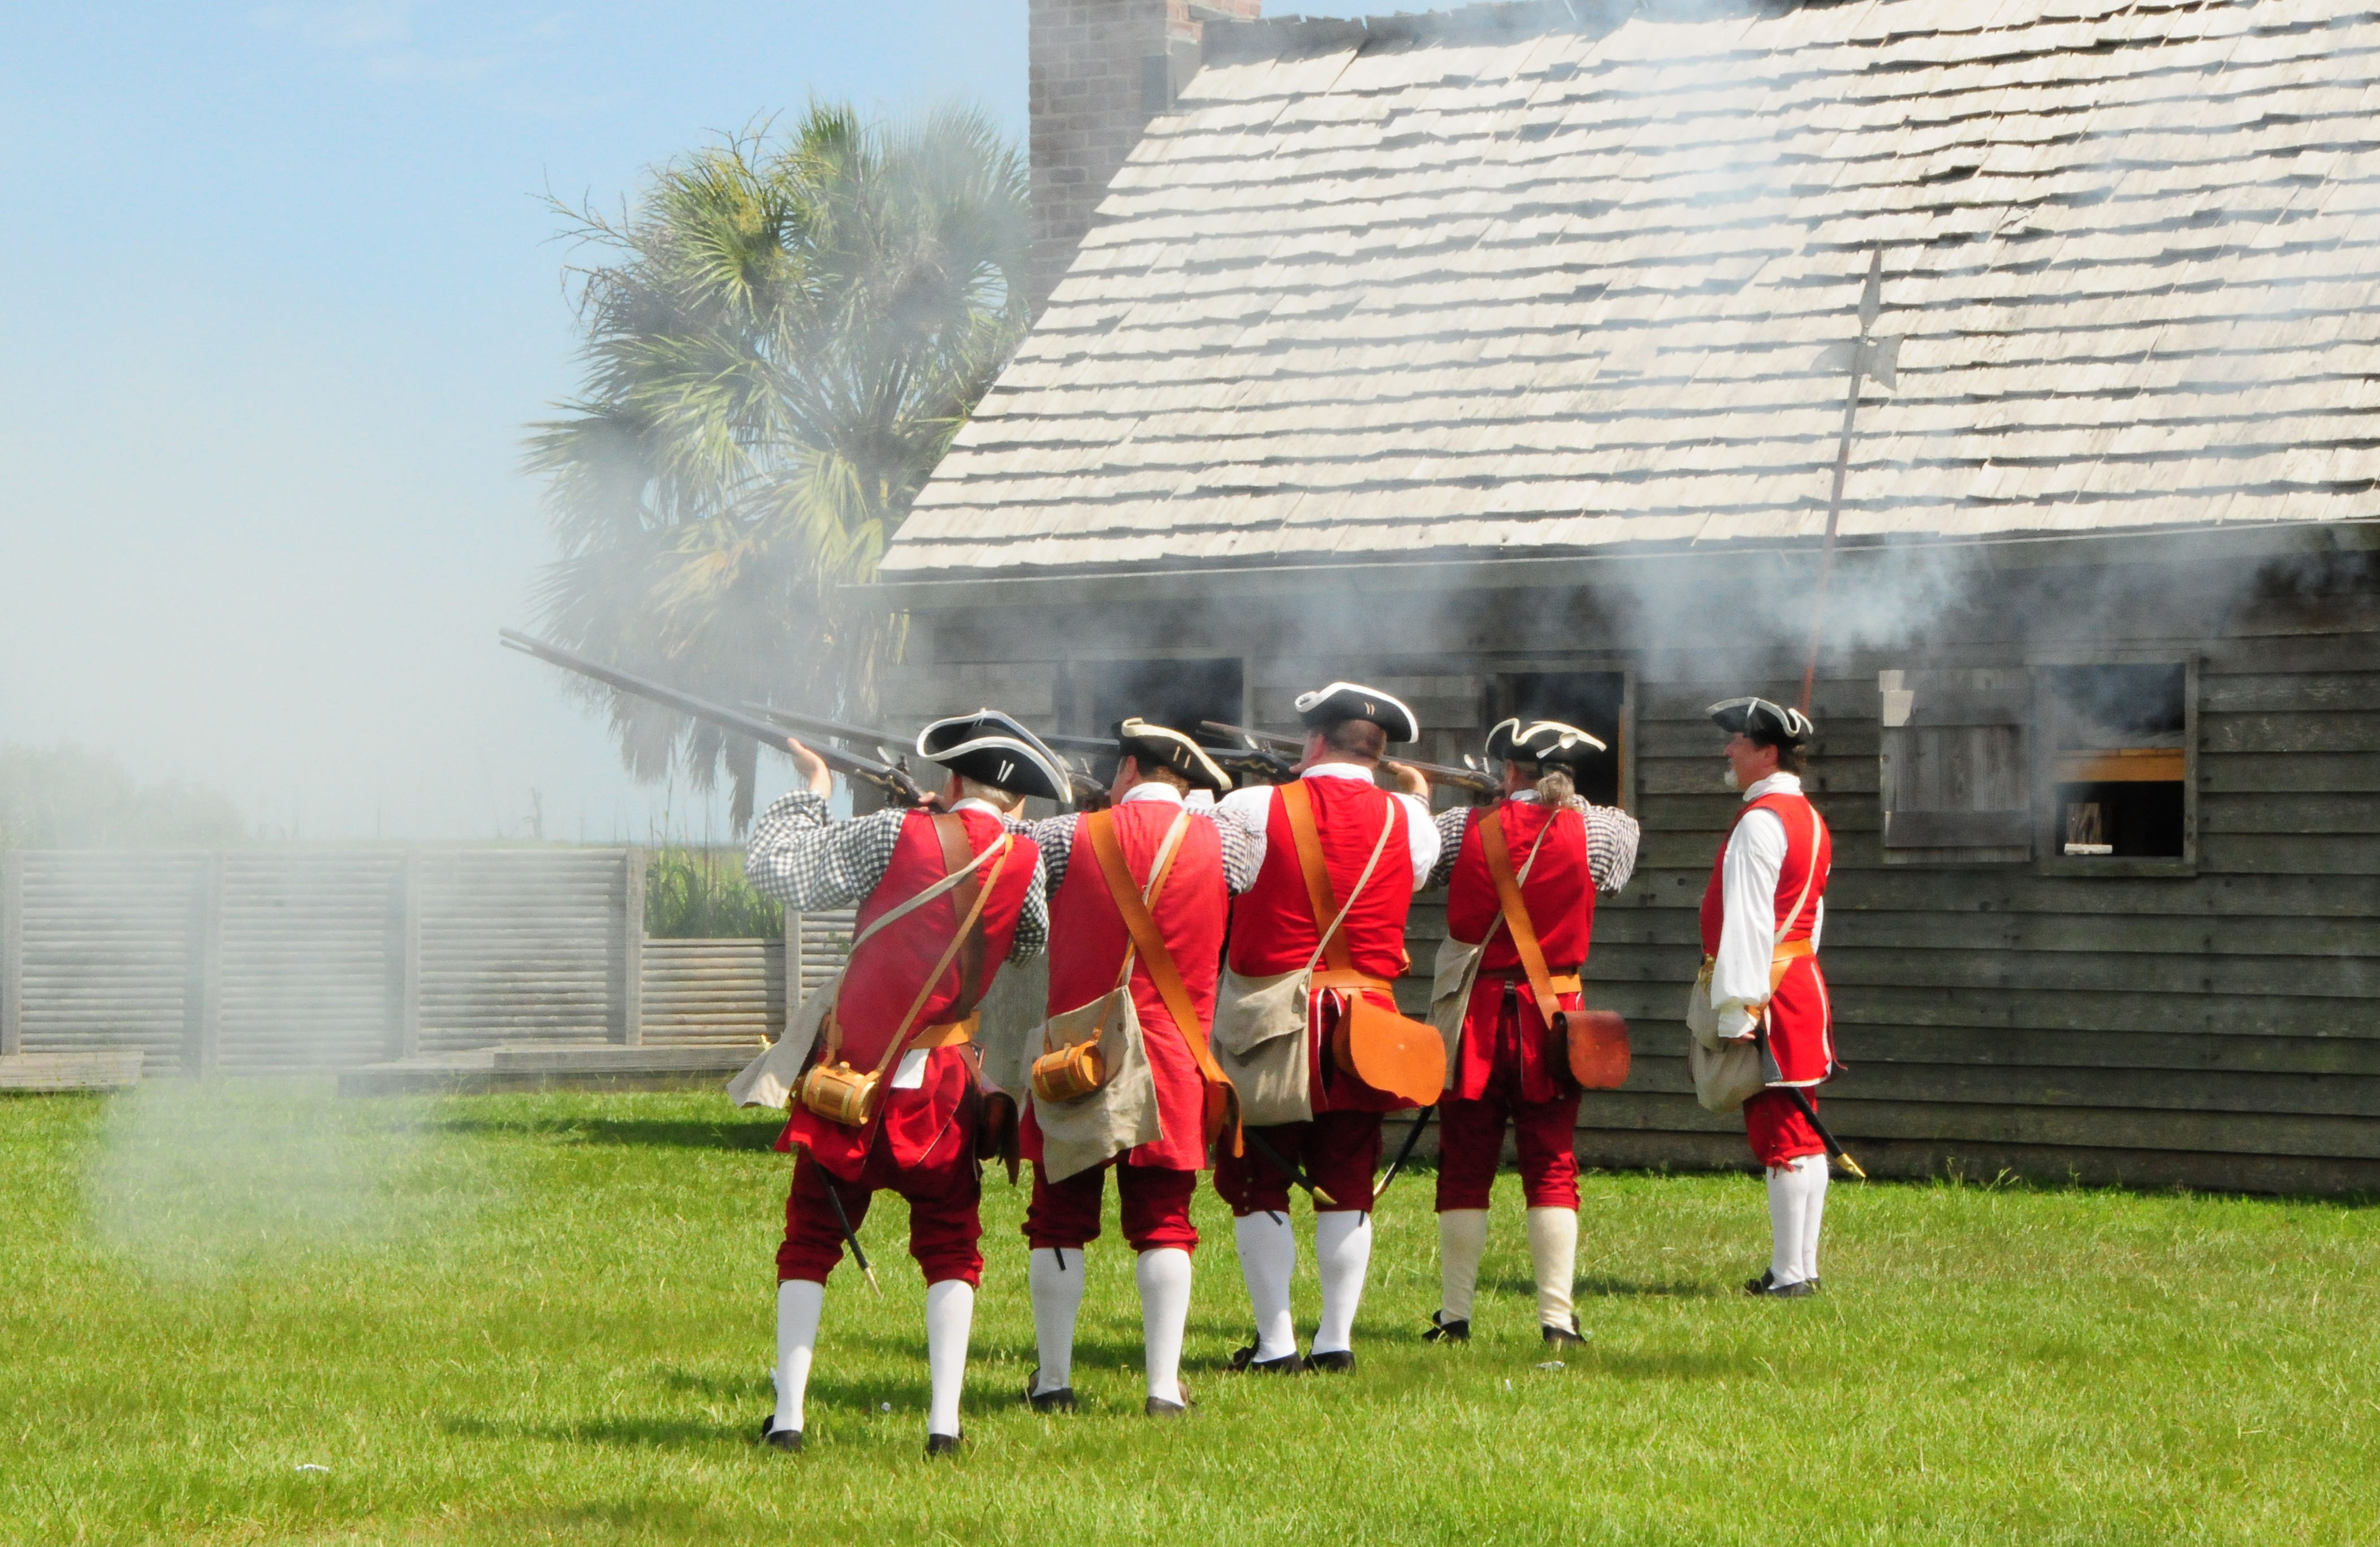 Fort King George, listed on the National Register of Historic Places, hosts two major reenactments each year. The fort served as the southernmost British Colonial outpost on the Atlantic seaboard in the early 1700s, discouraging attacks from the Spanish and French.